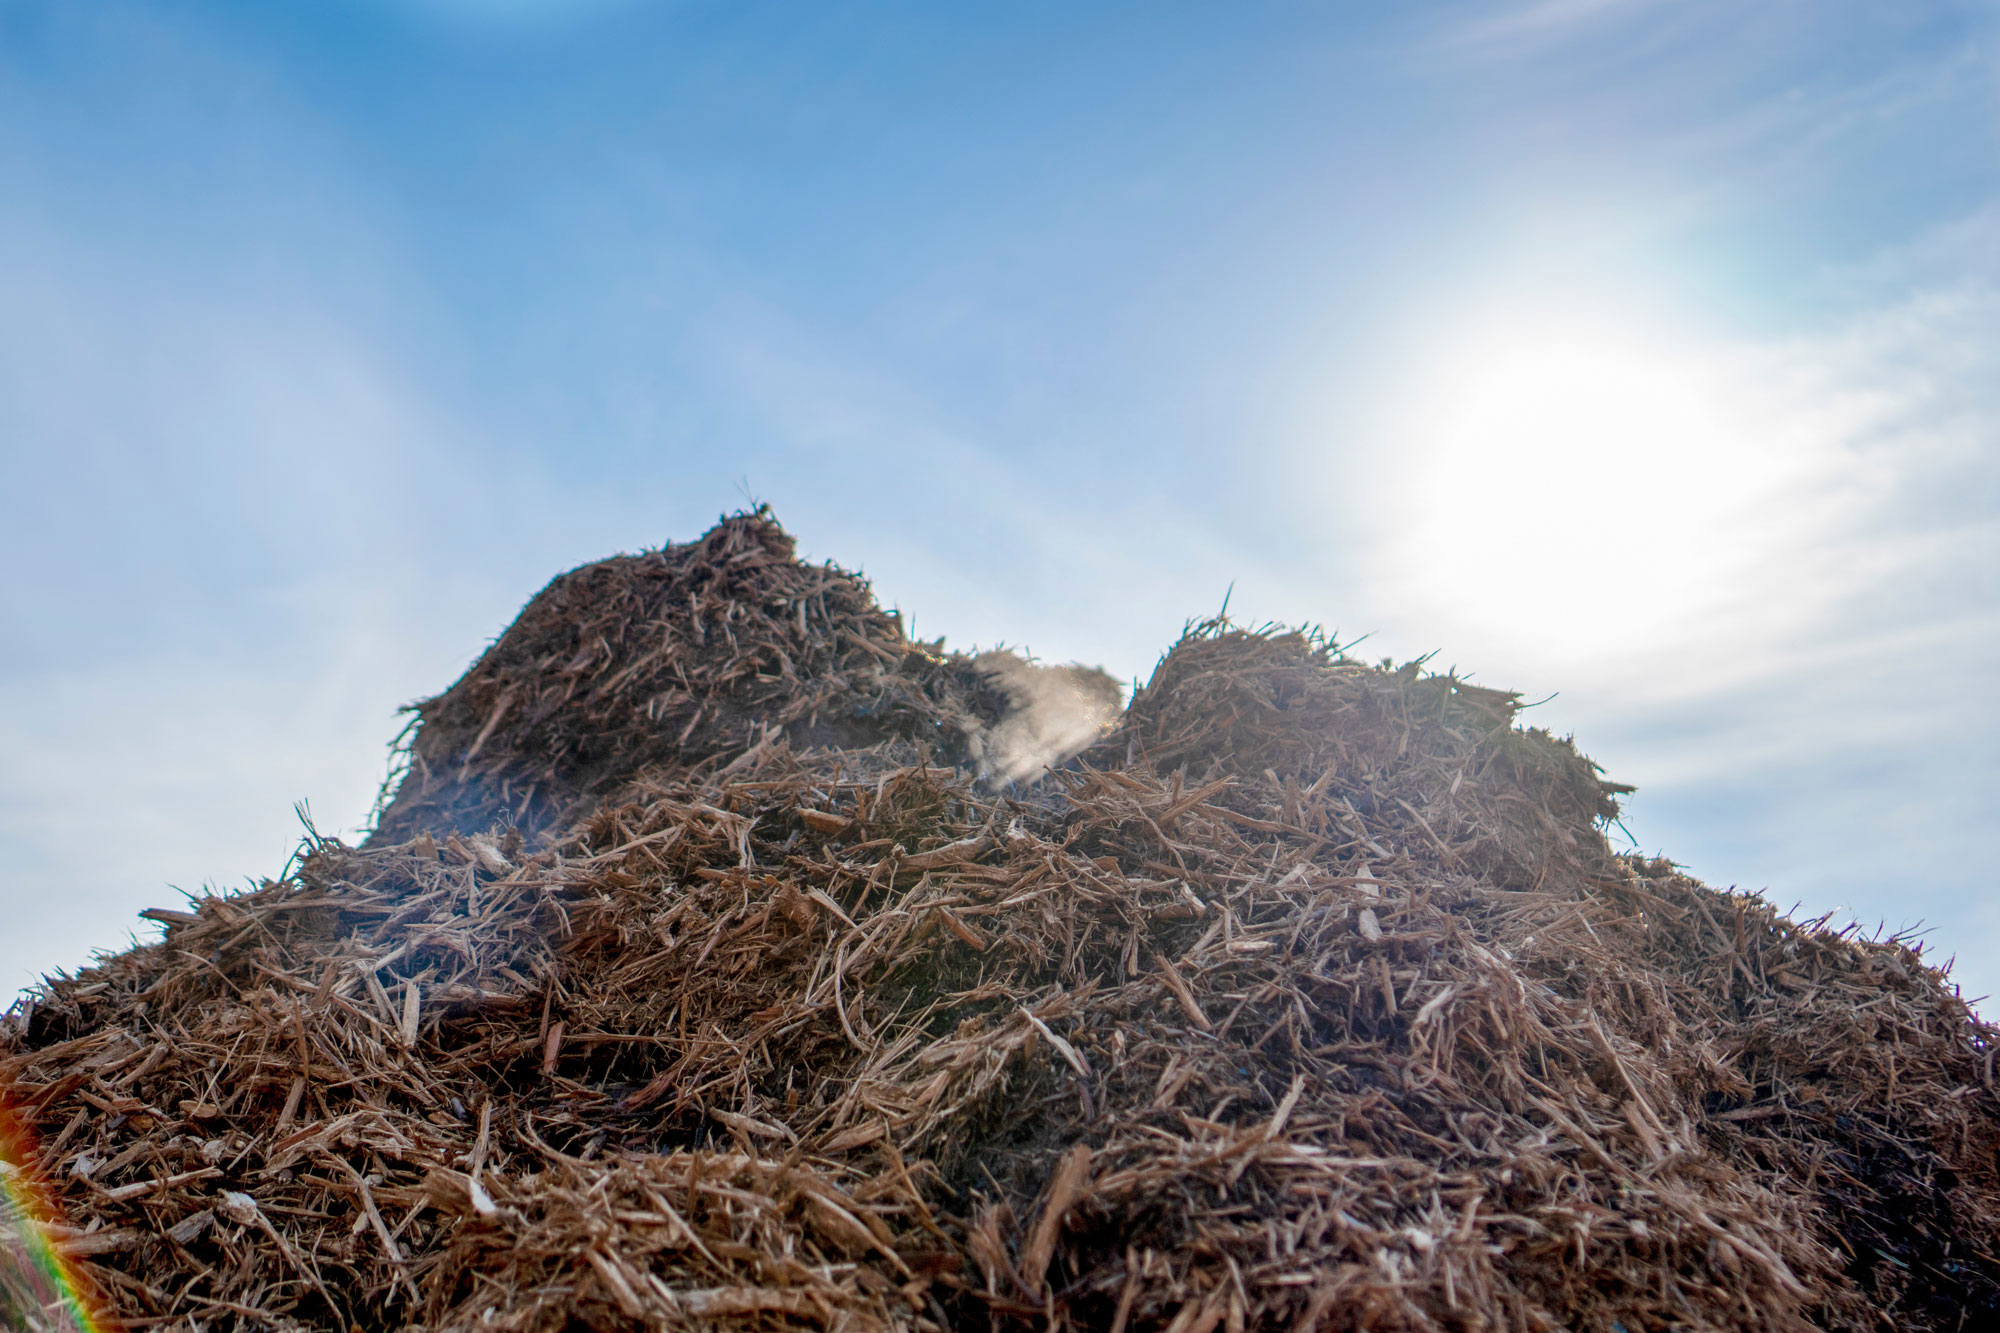 Pile of mulch under bright sun